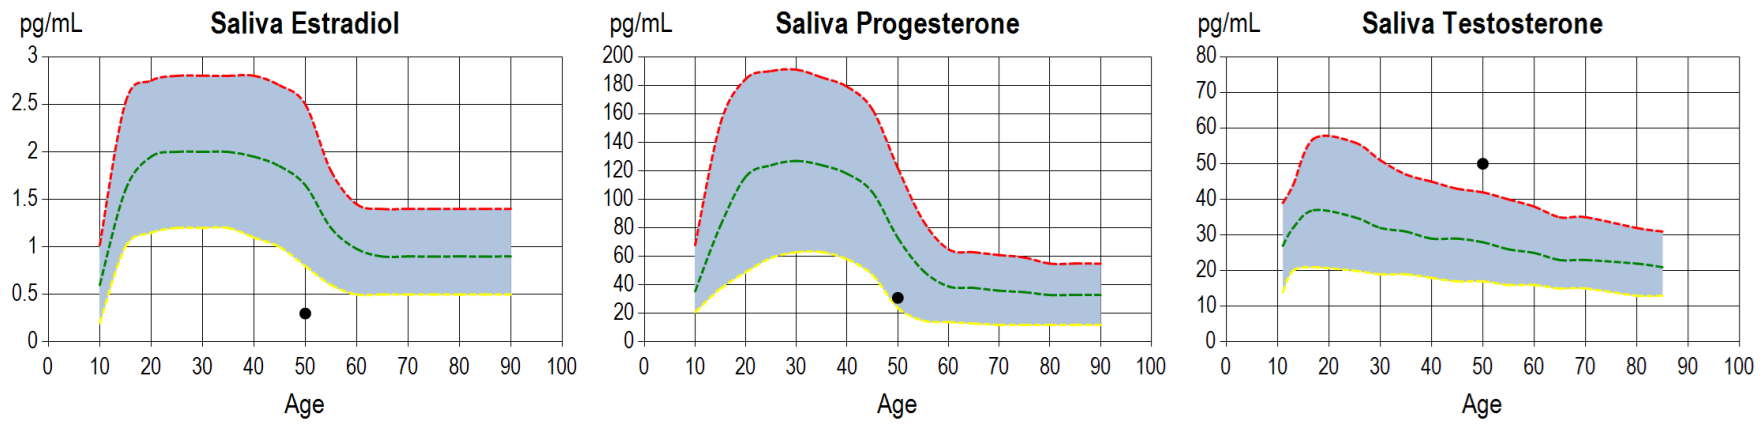 Saliva Estradiol, Saliva Progesterone, and Saliva Testosterone test results presented by ZRT Laboratory